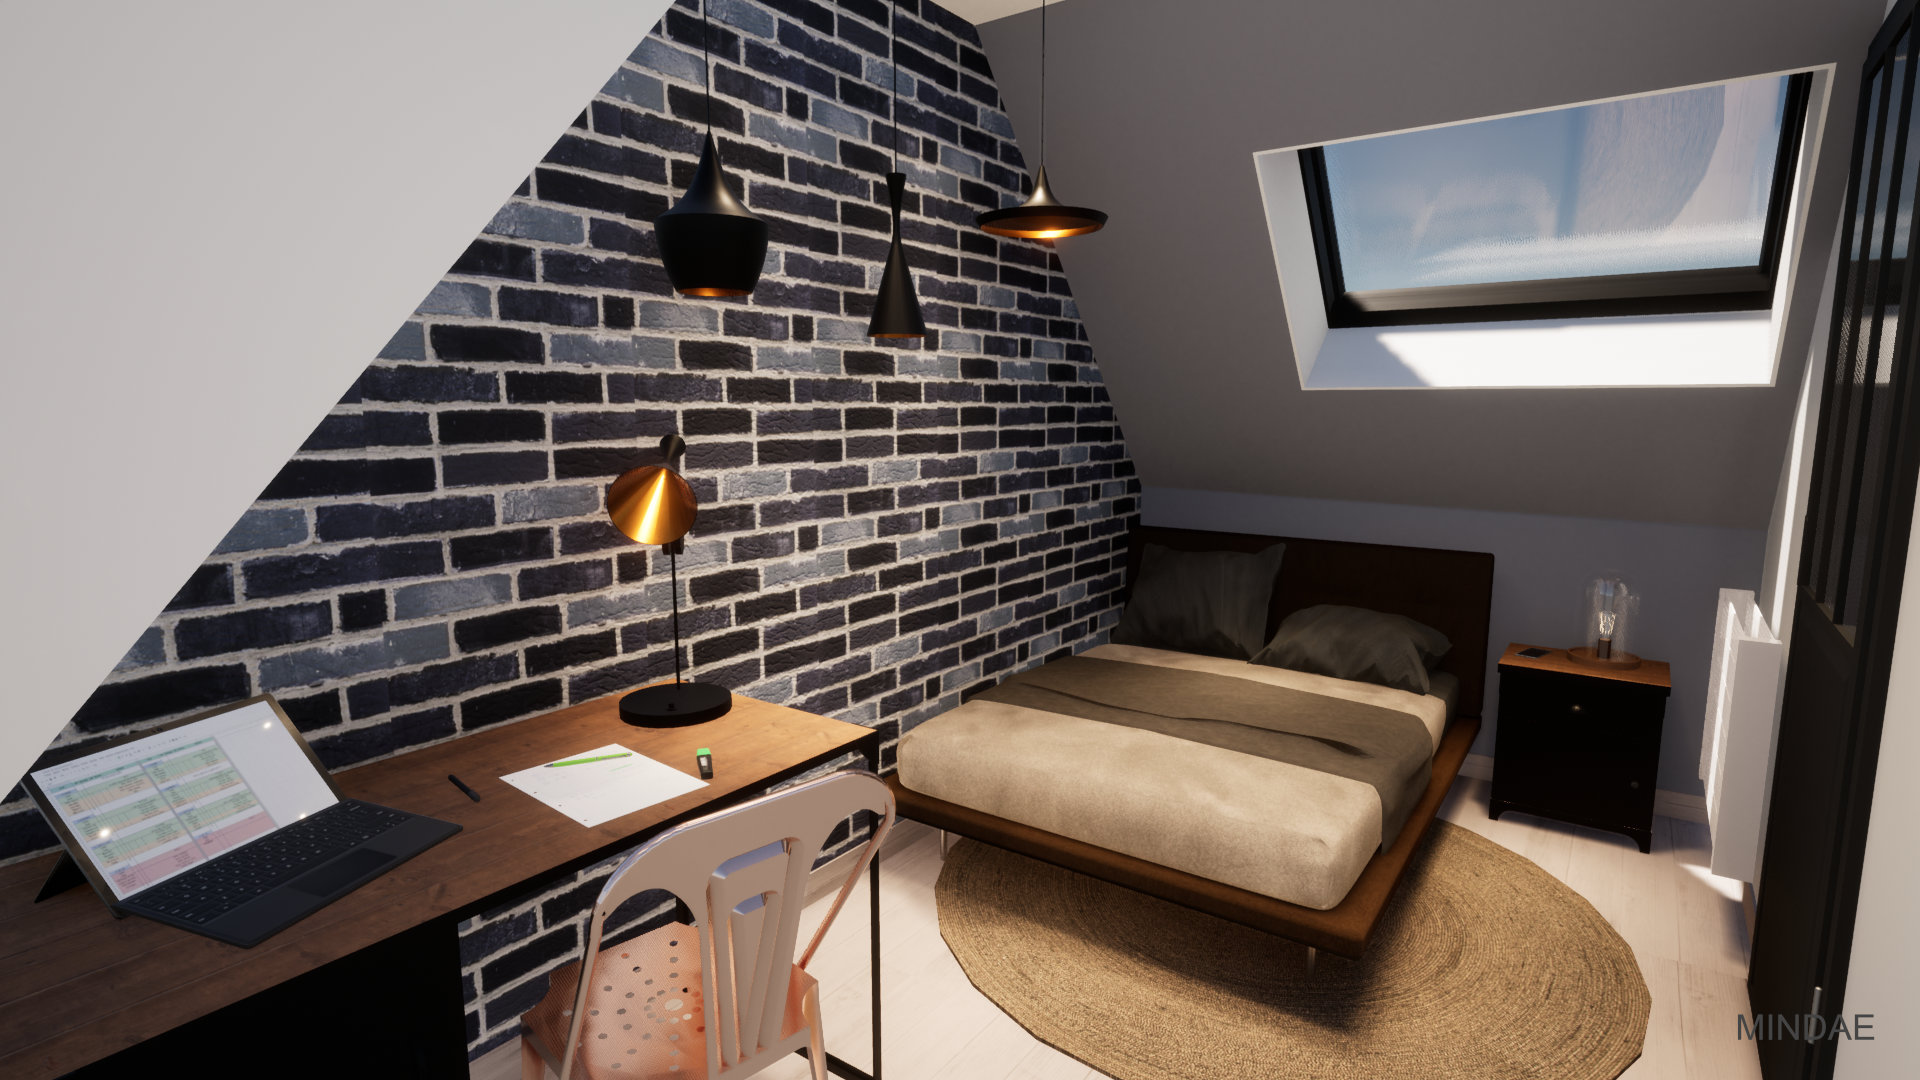 Mindae_Giang_Combles_Appartement_studio_chambre_mansarde_toiture (1)